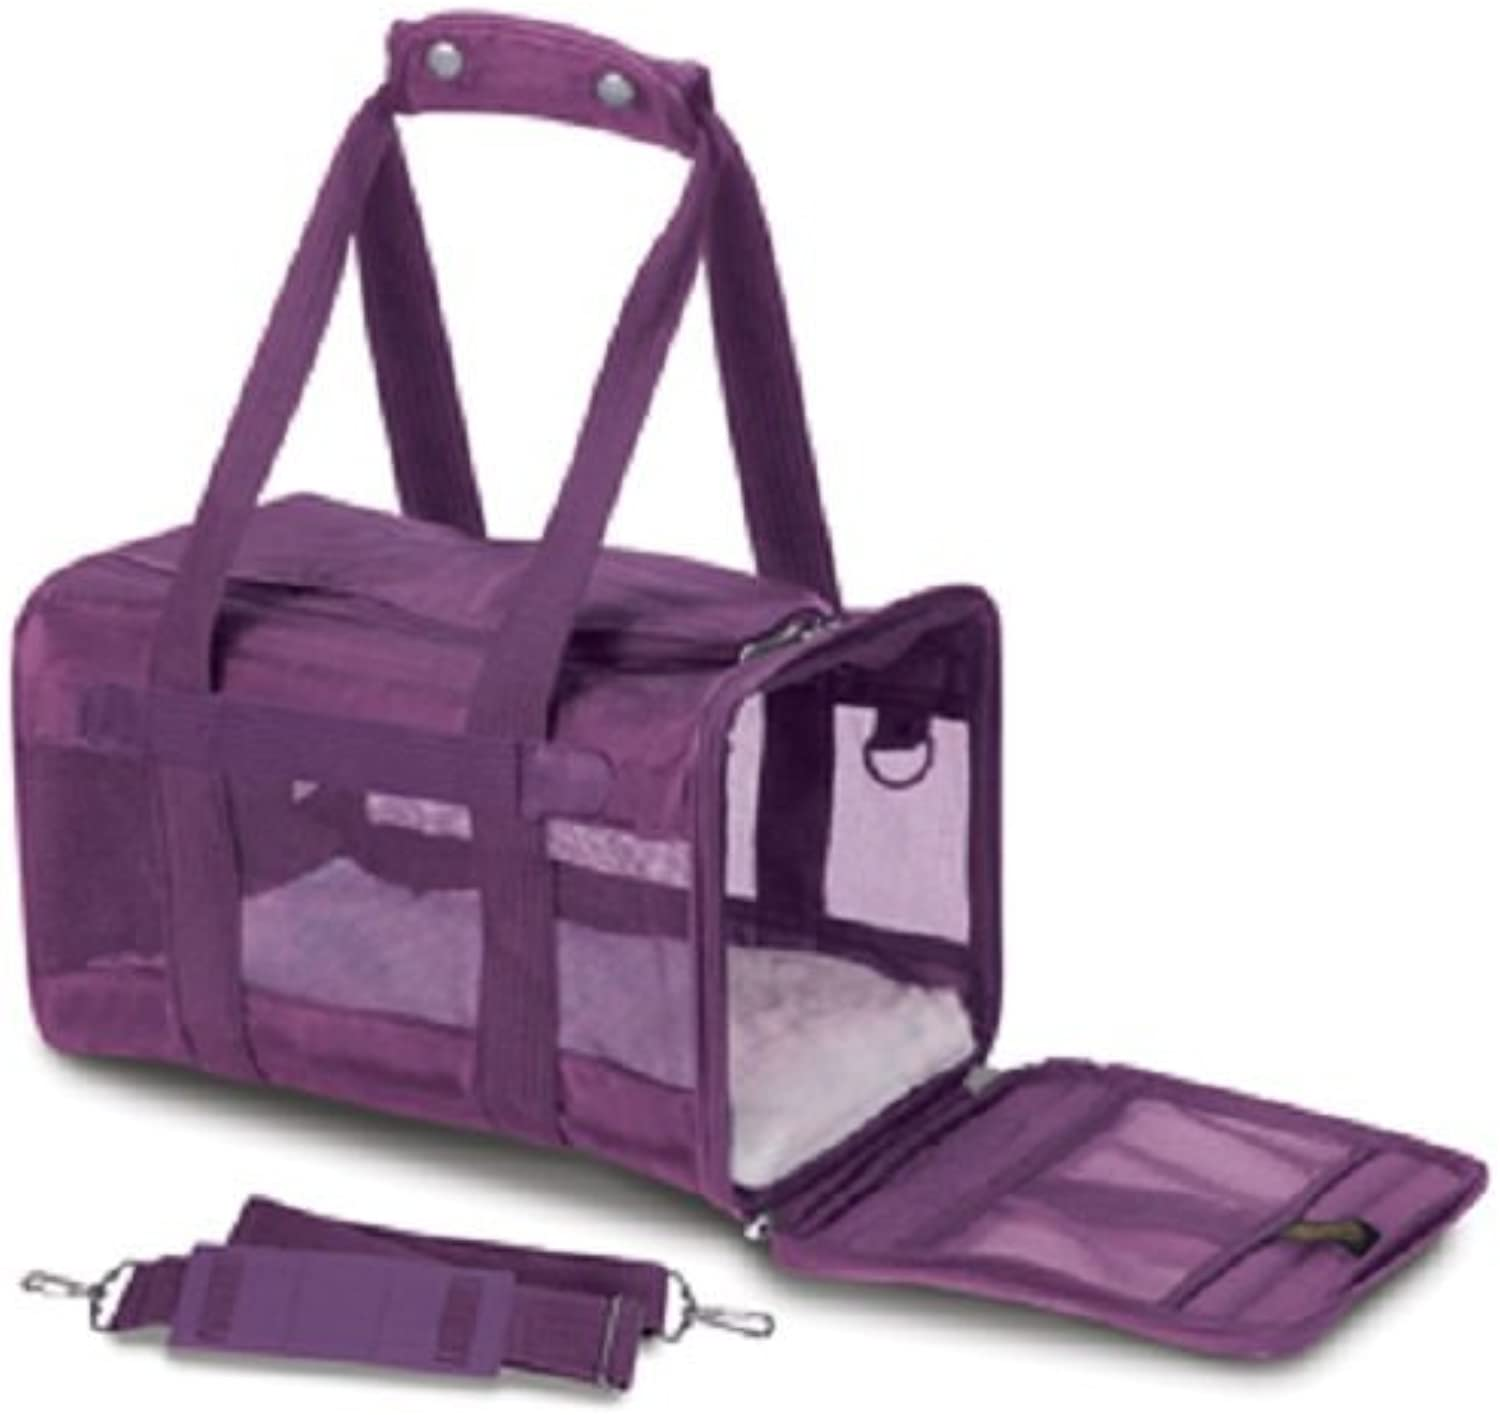 Sherpa Original Deluxe Pet Carriers With Bonus Travel PortABowl (Plum, Small)